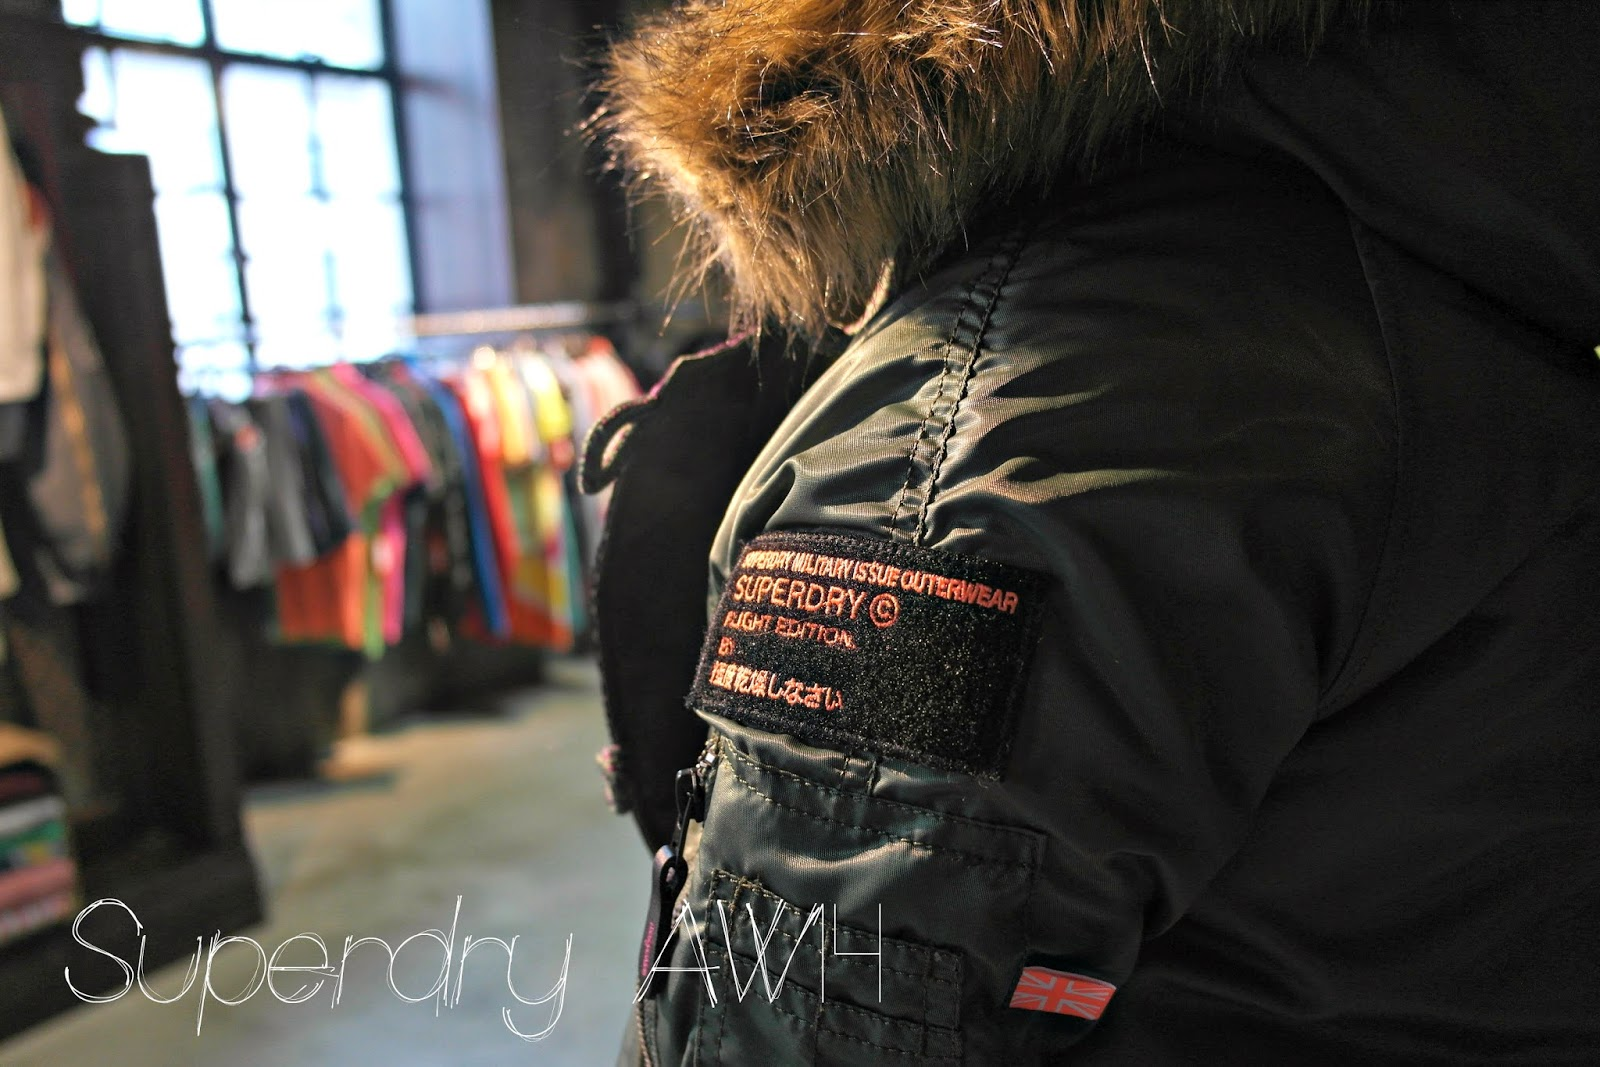 Aw14 superdry